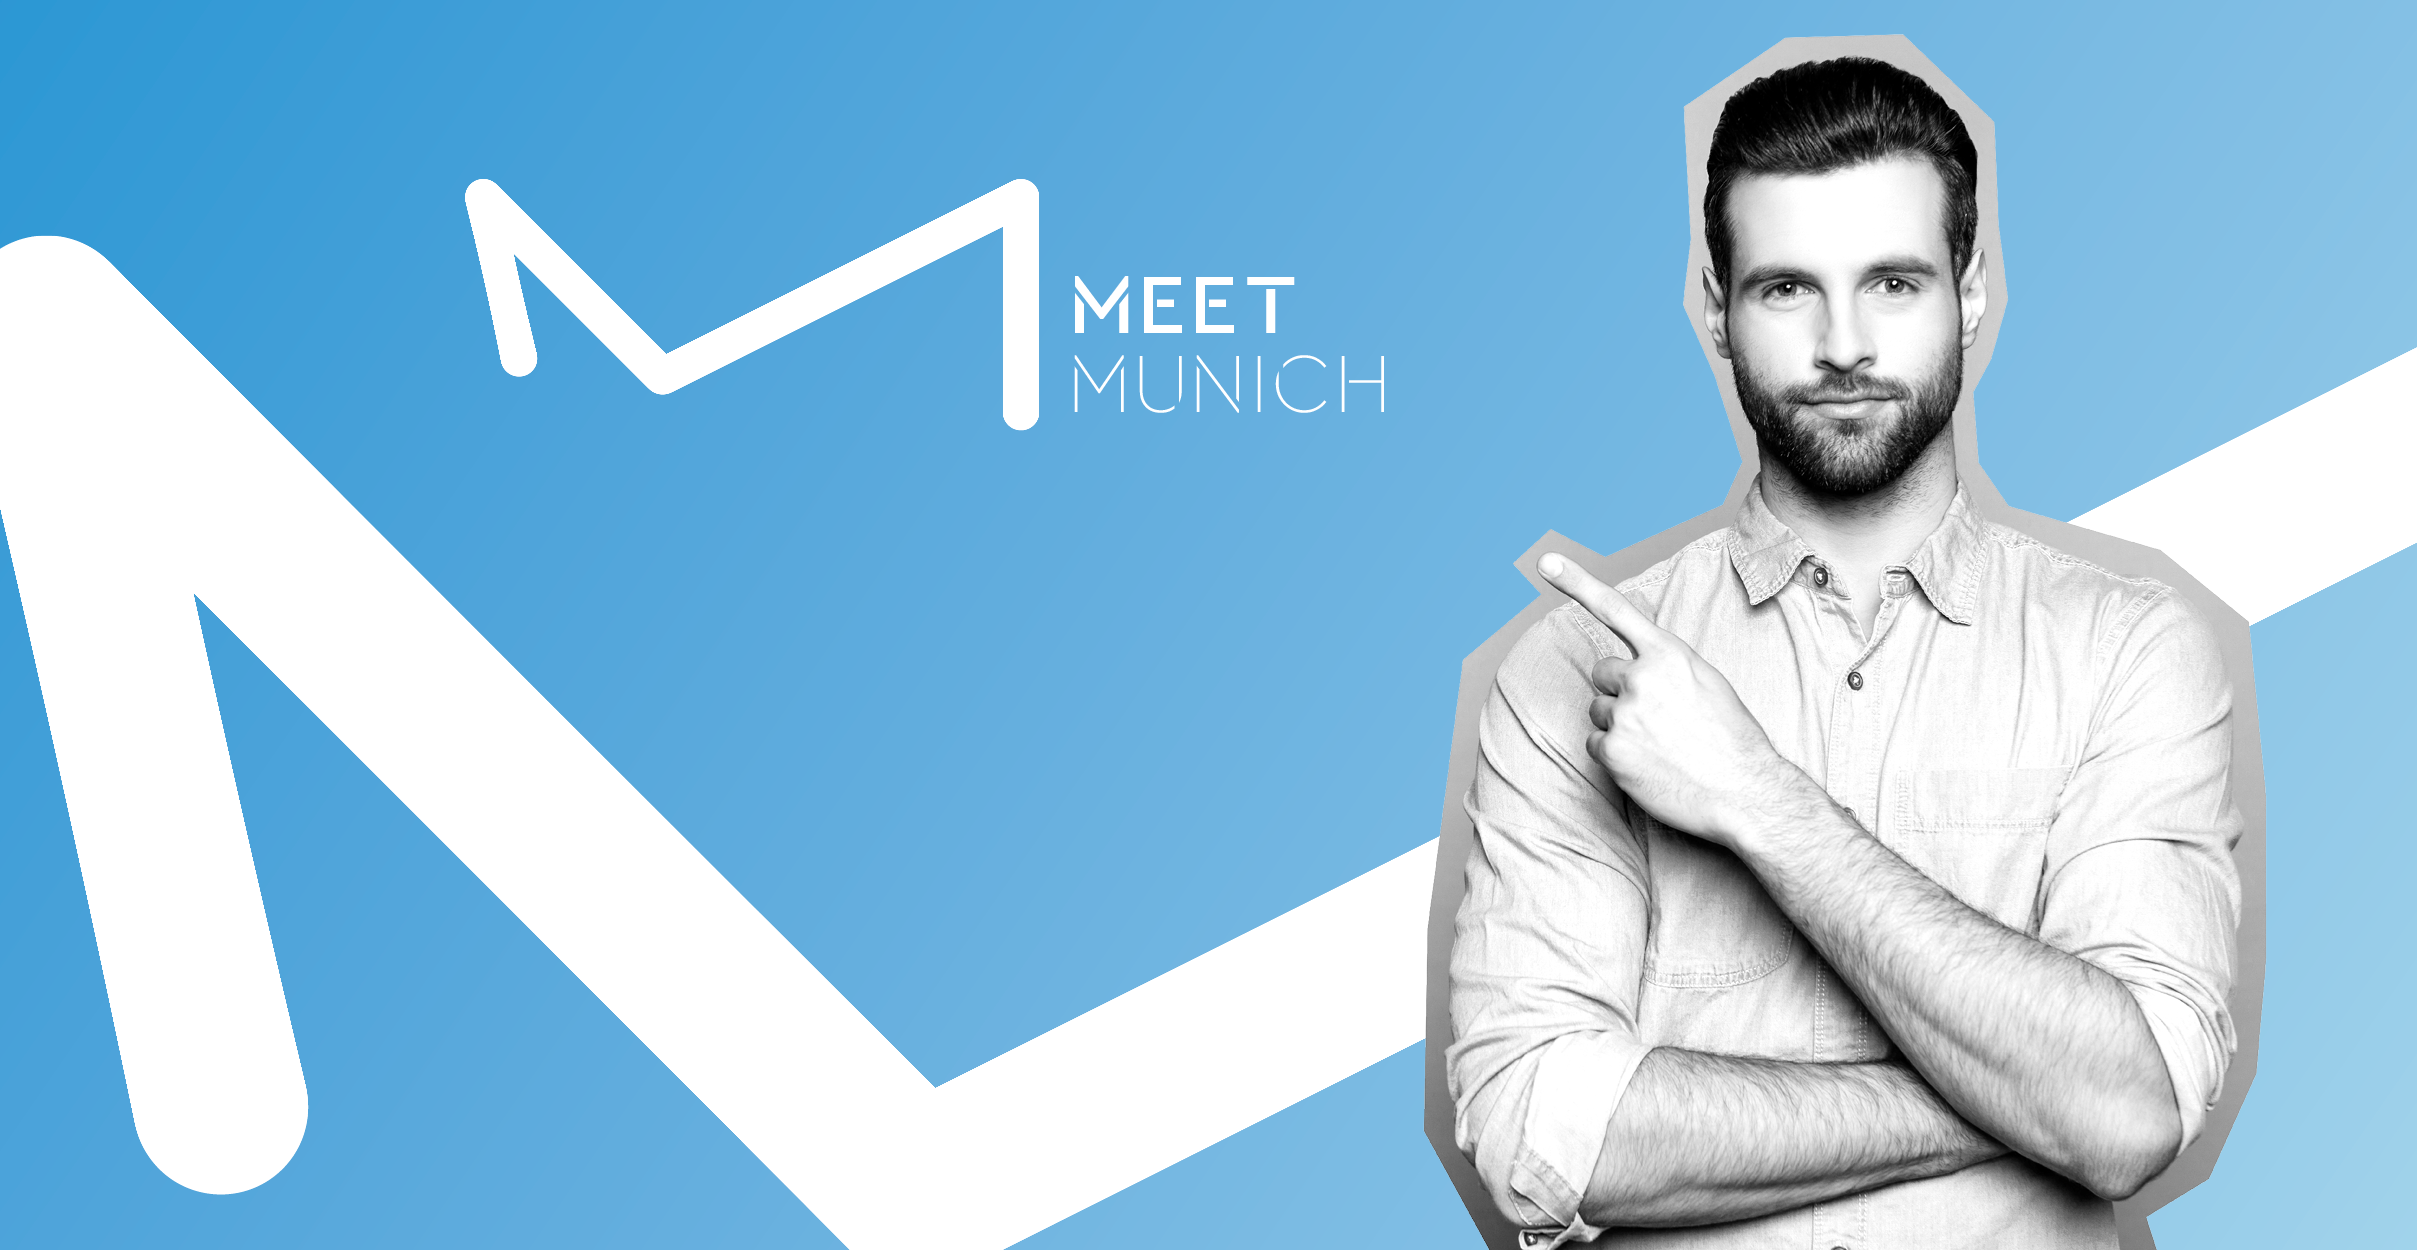 MEET MUNICH - MEET GERMANY